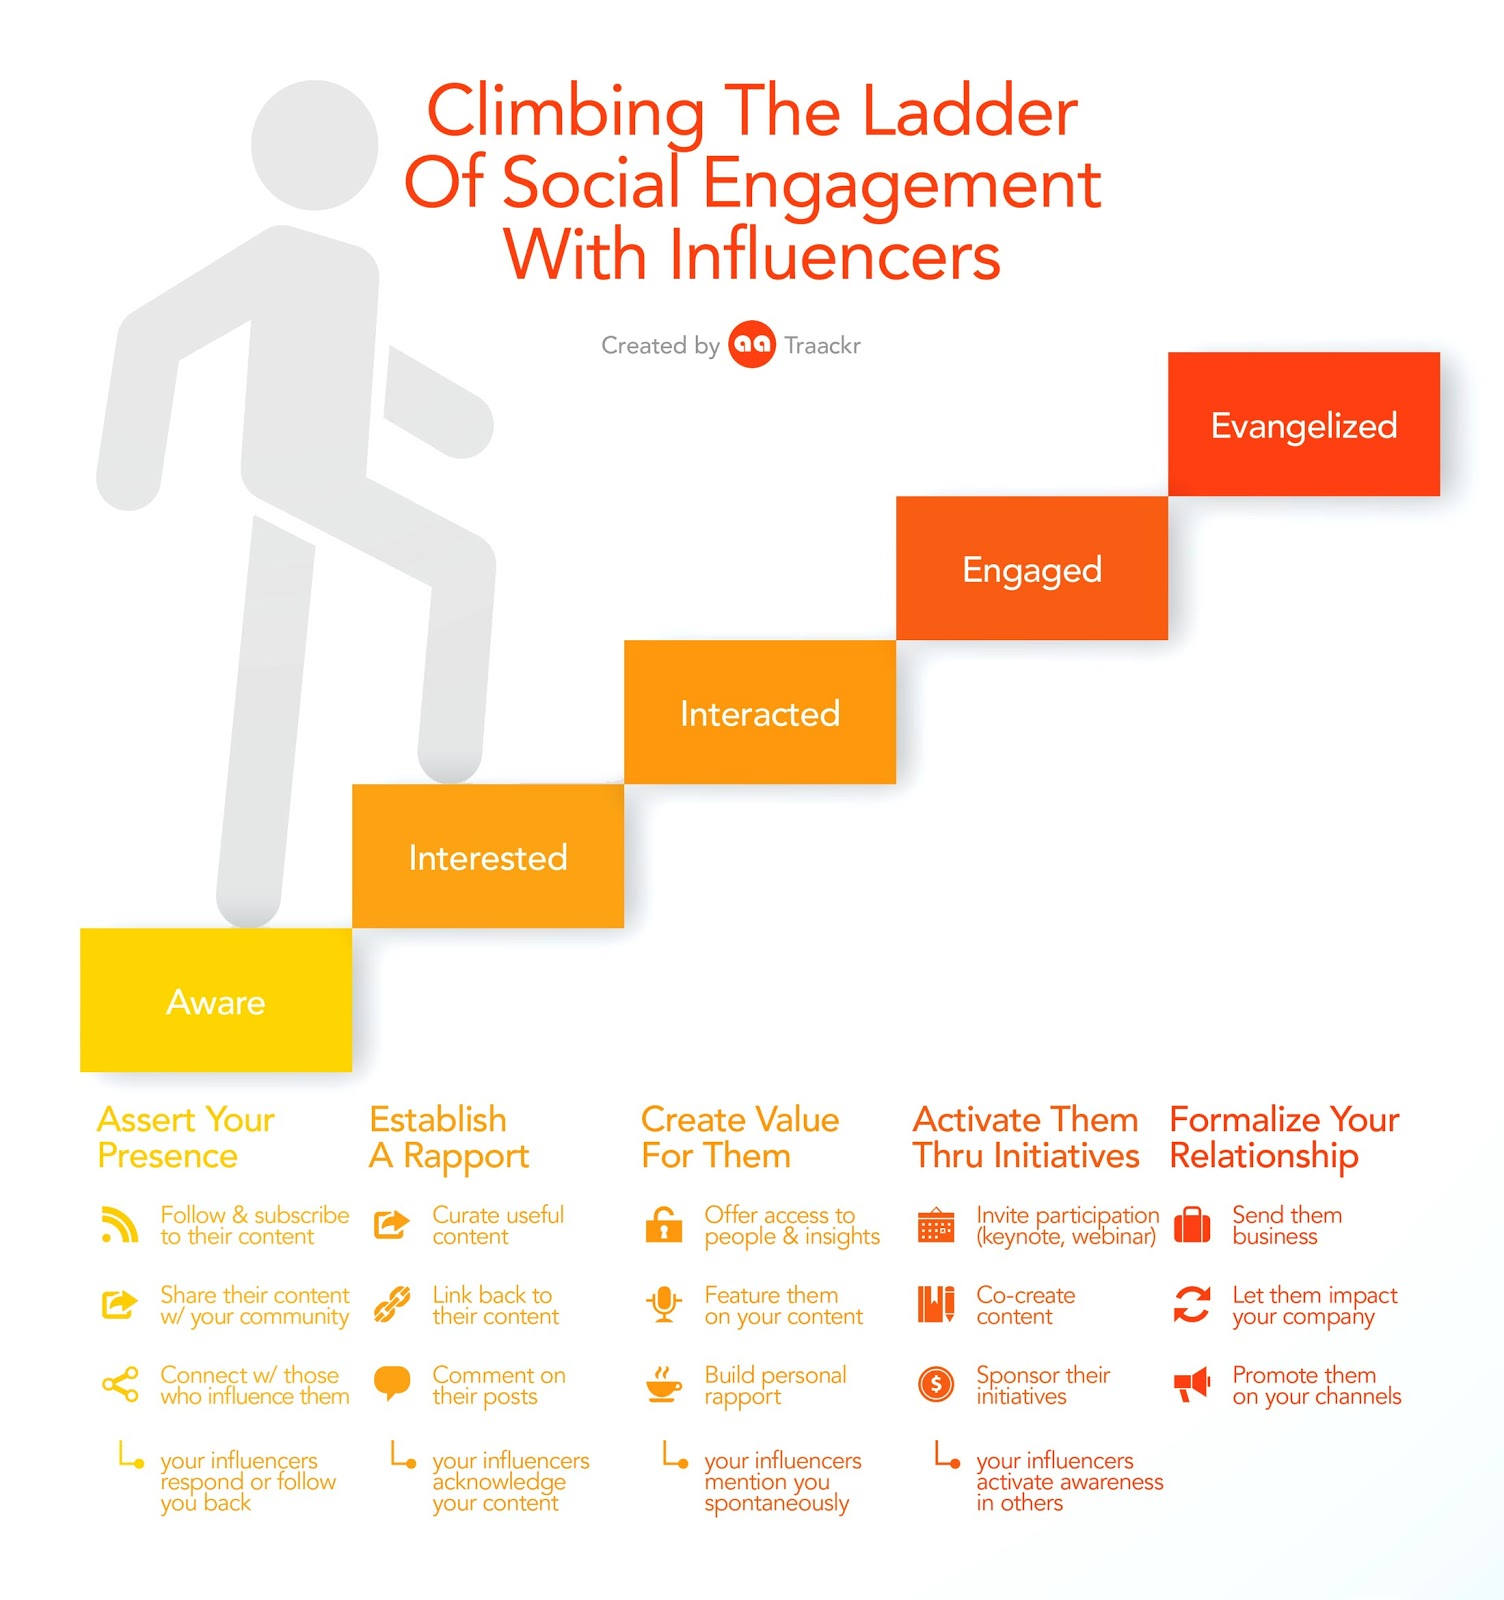 Climbing the ladder of social engagement with influencers